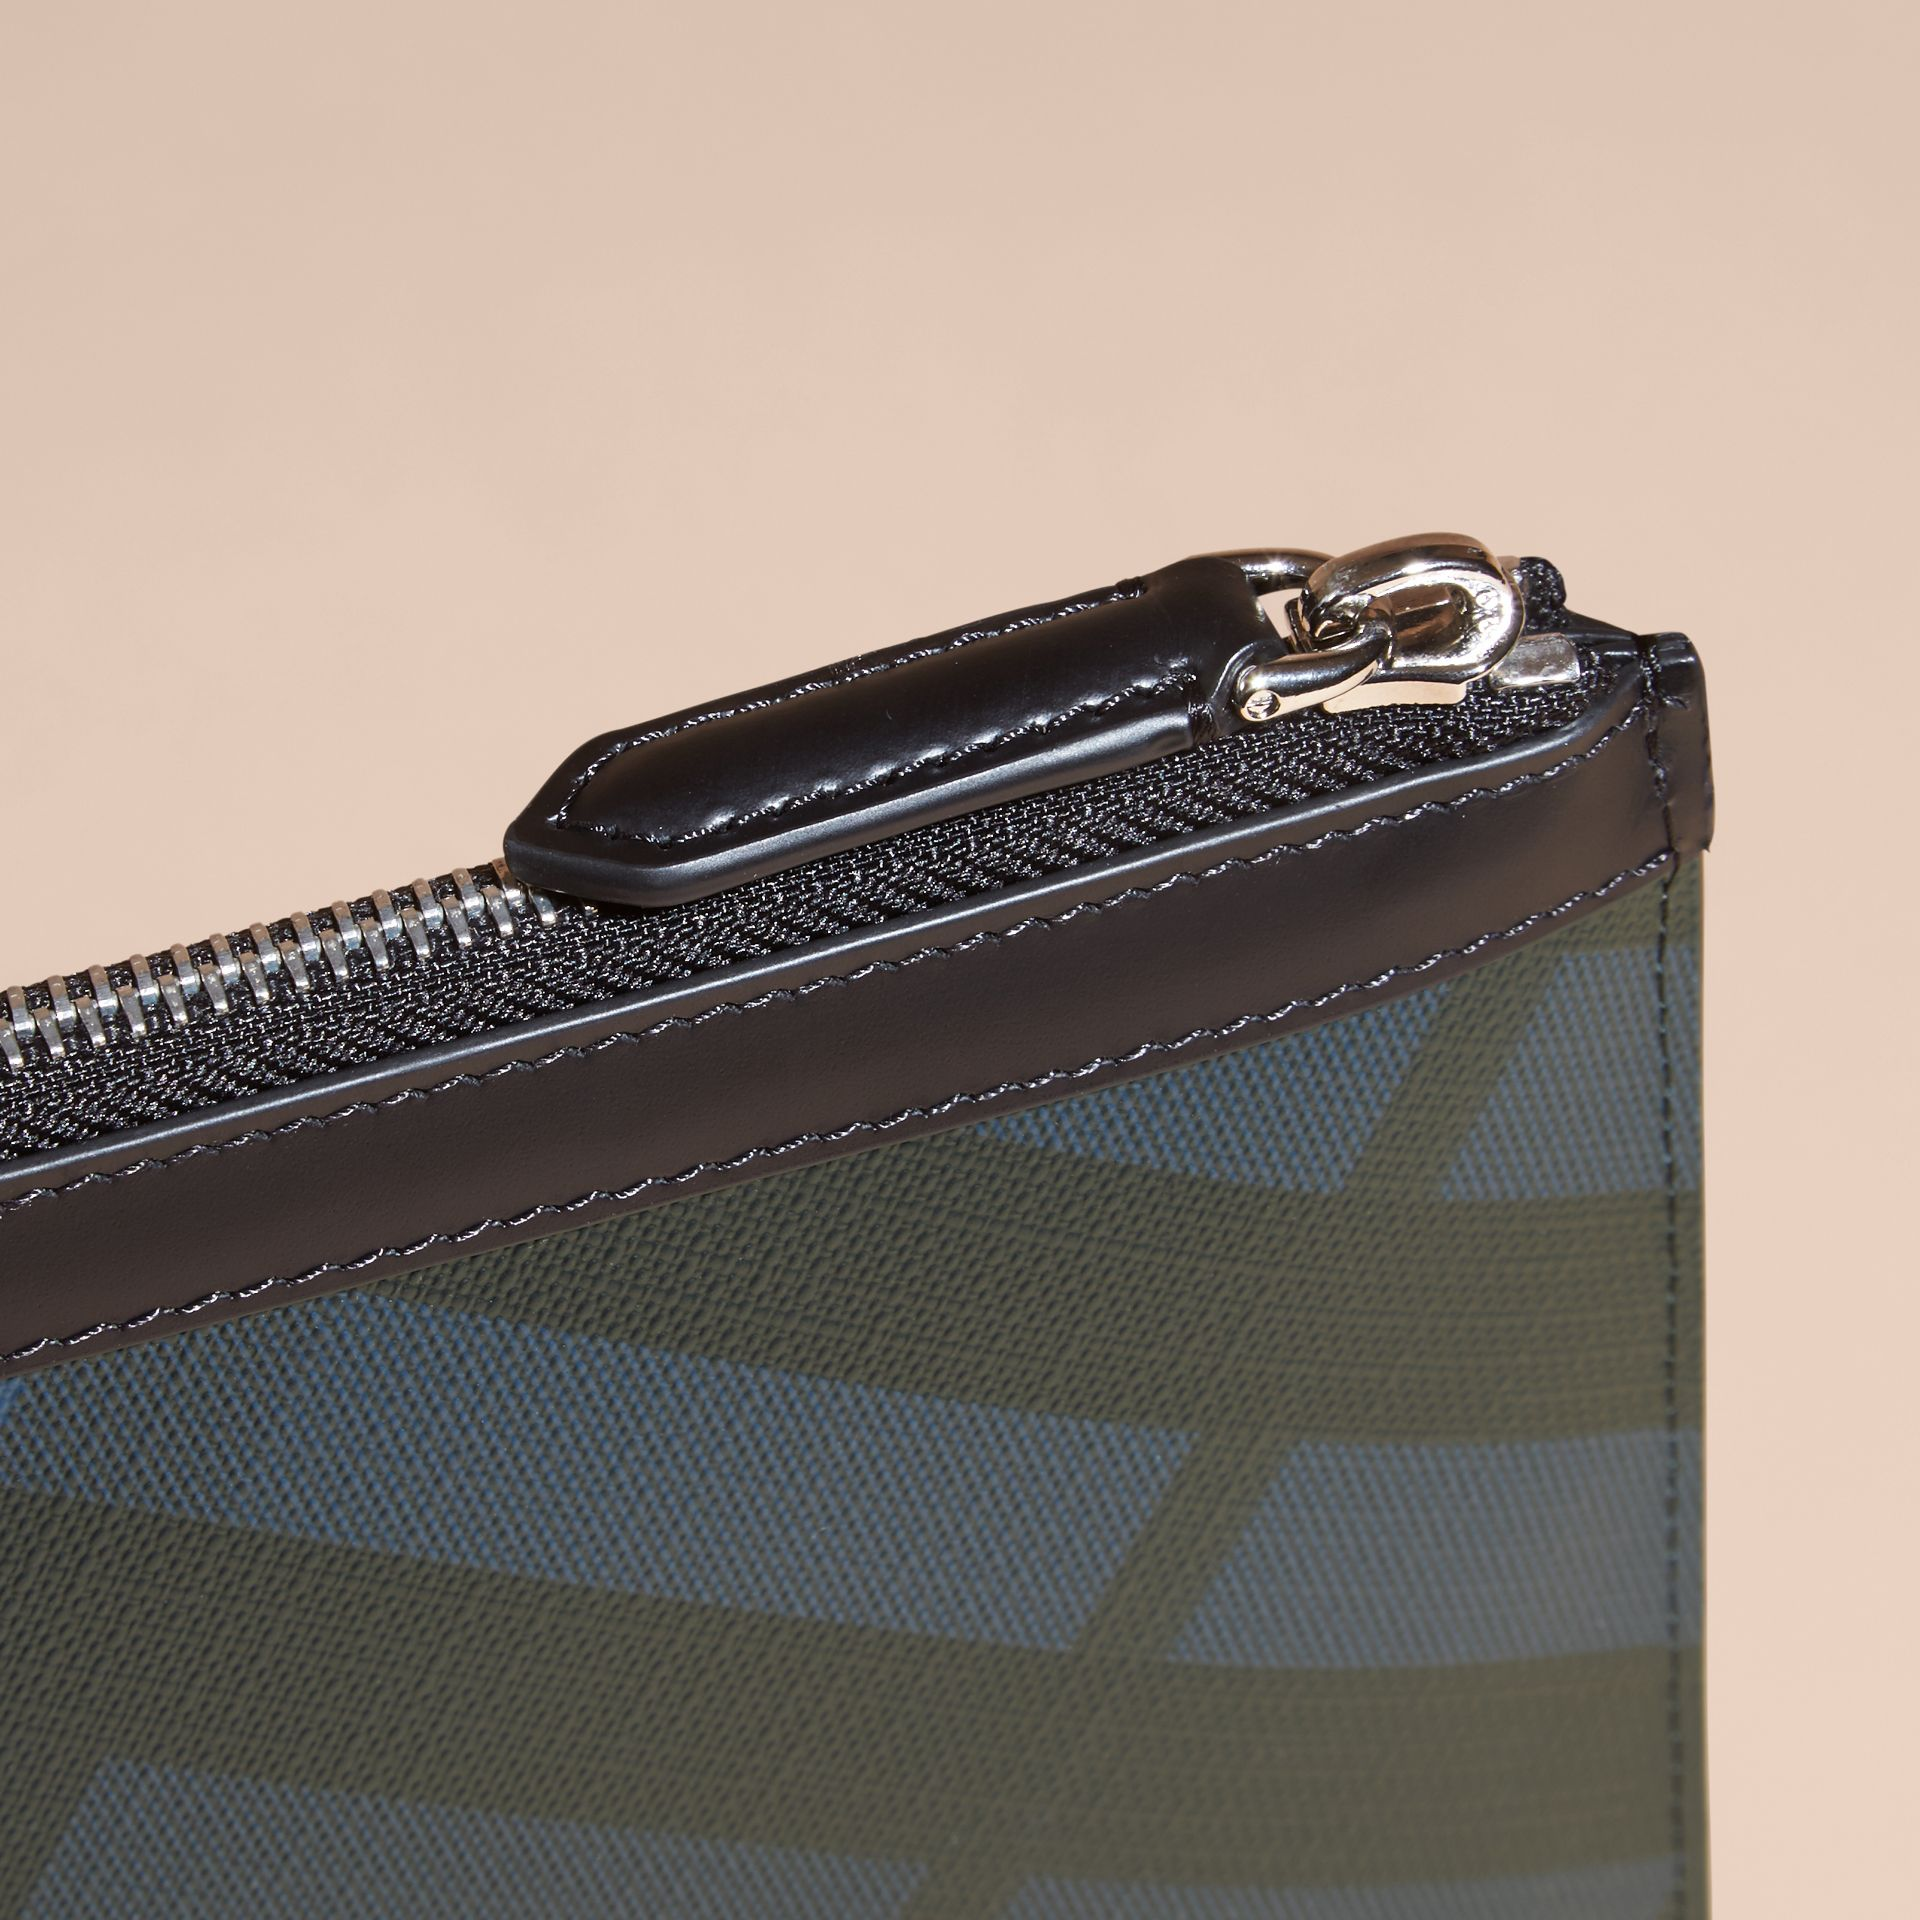 Zipped London Check Pouch Navy/black - gallery image 5